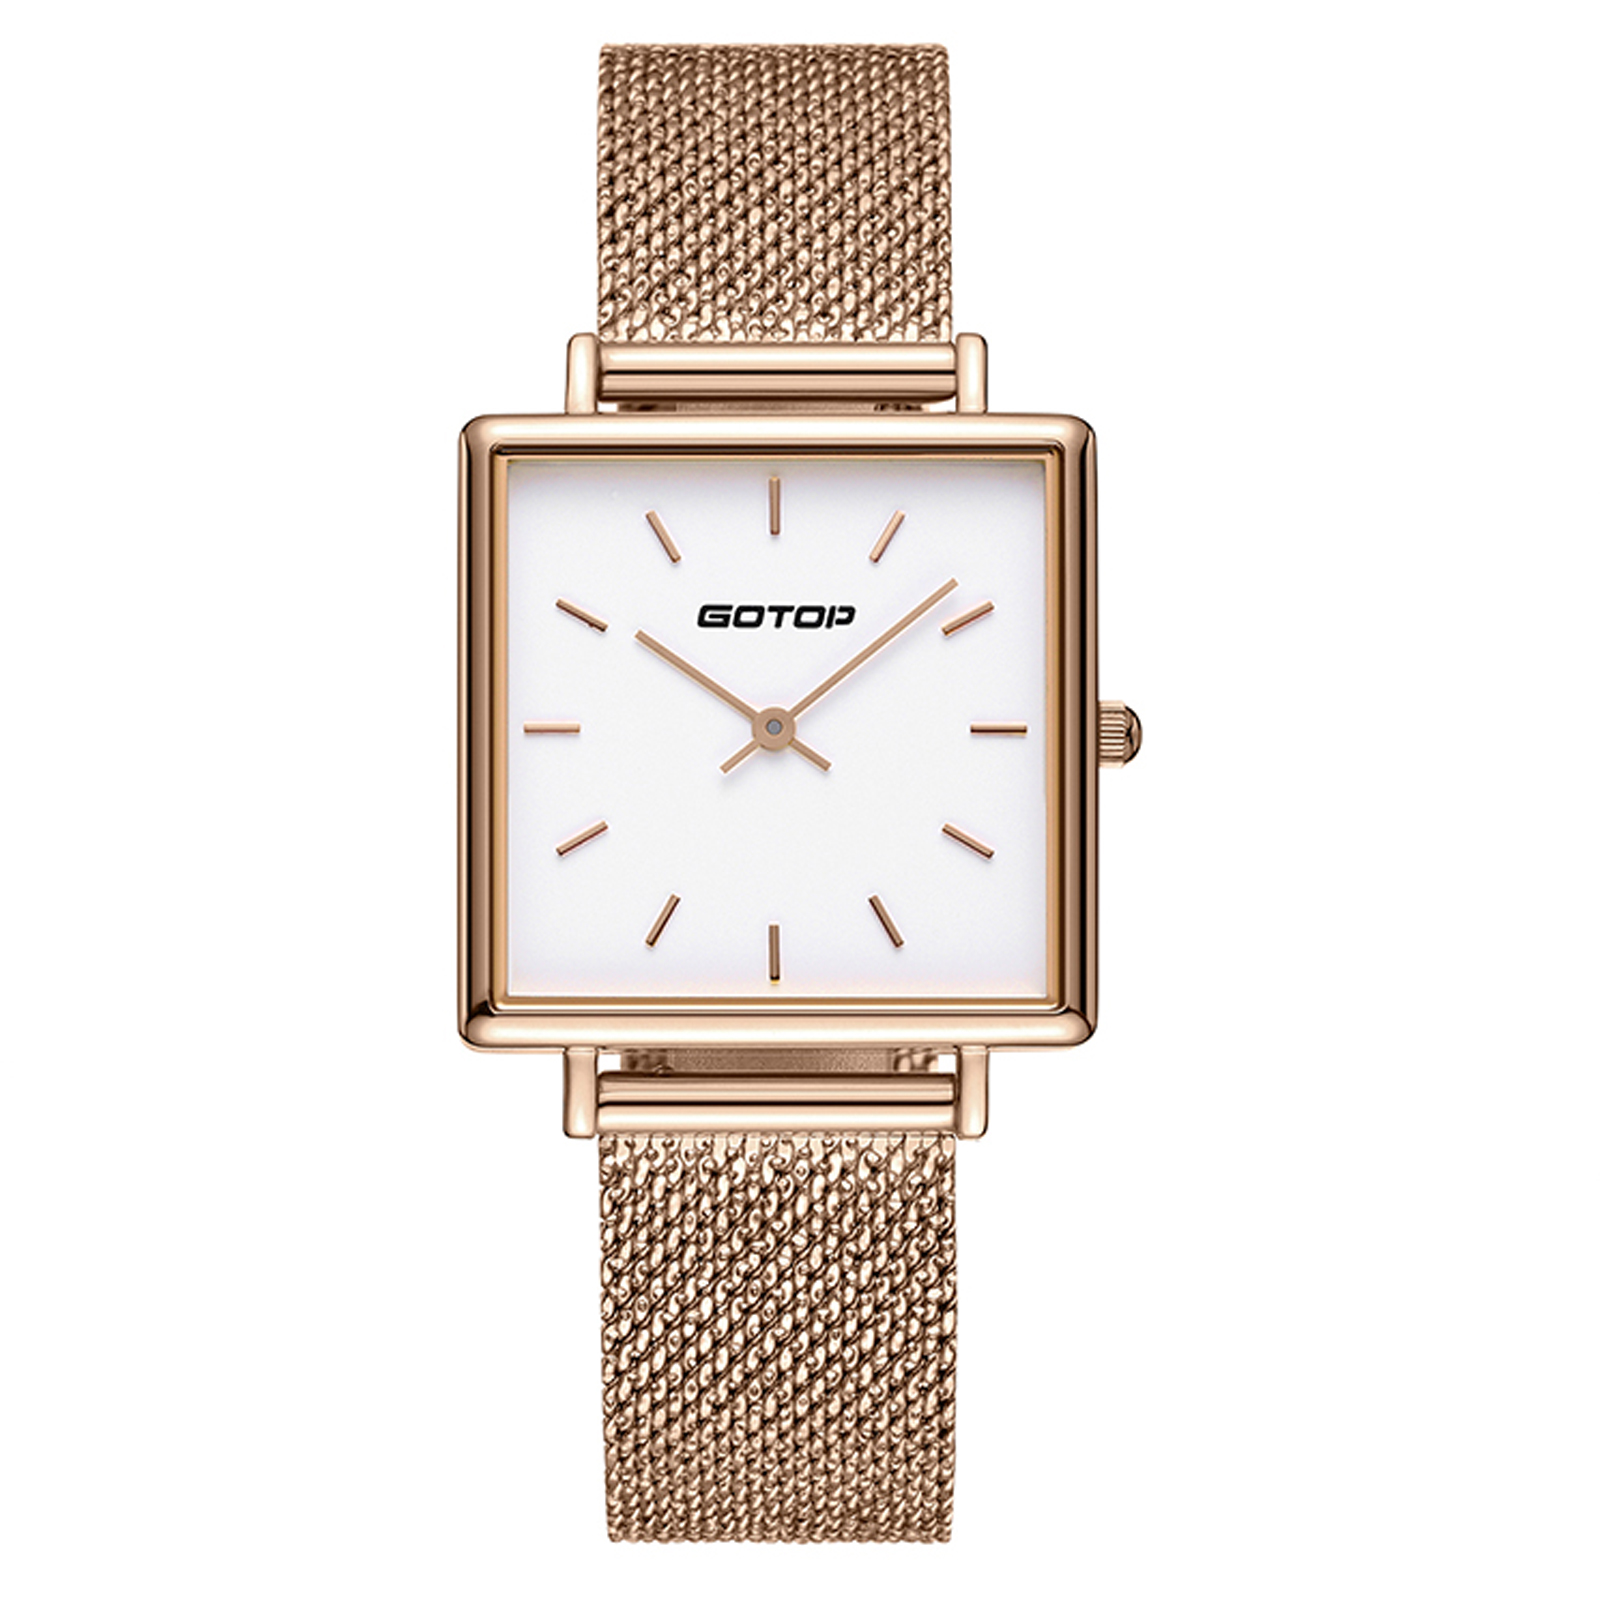 Square Rose Gold Stainless Steel Women's Watch With Mesh Band